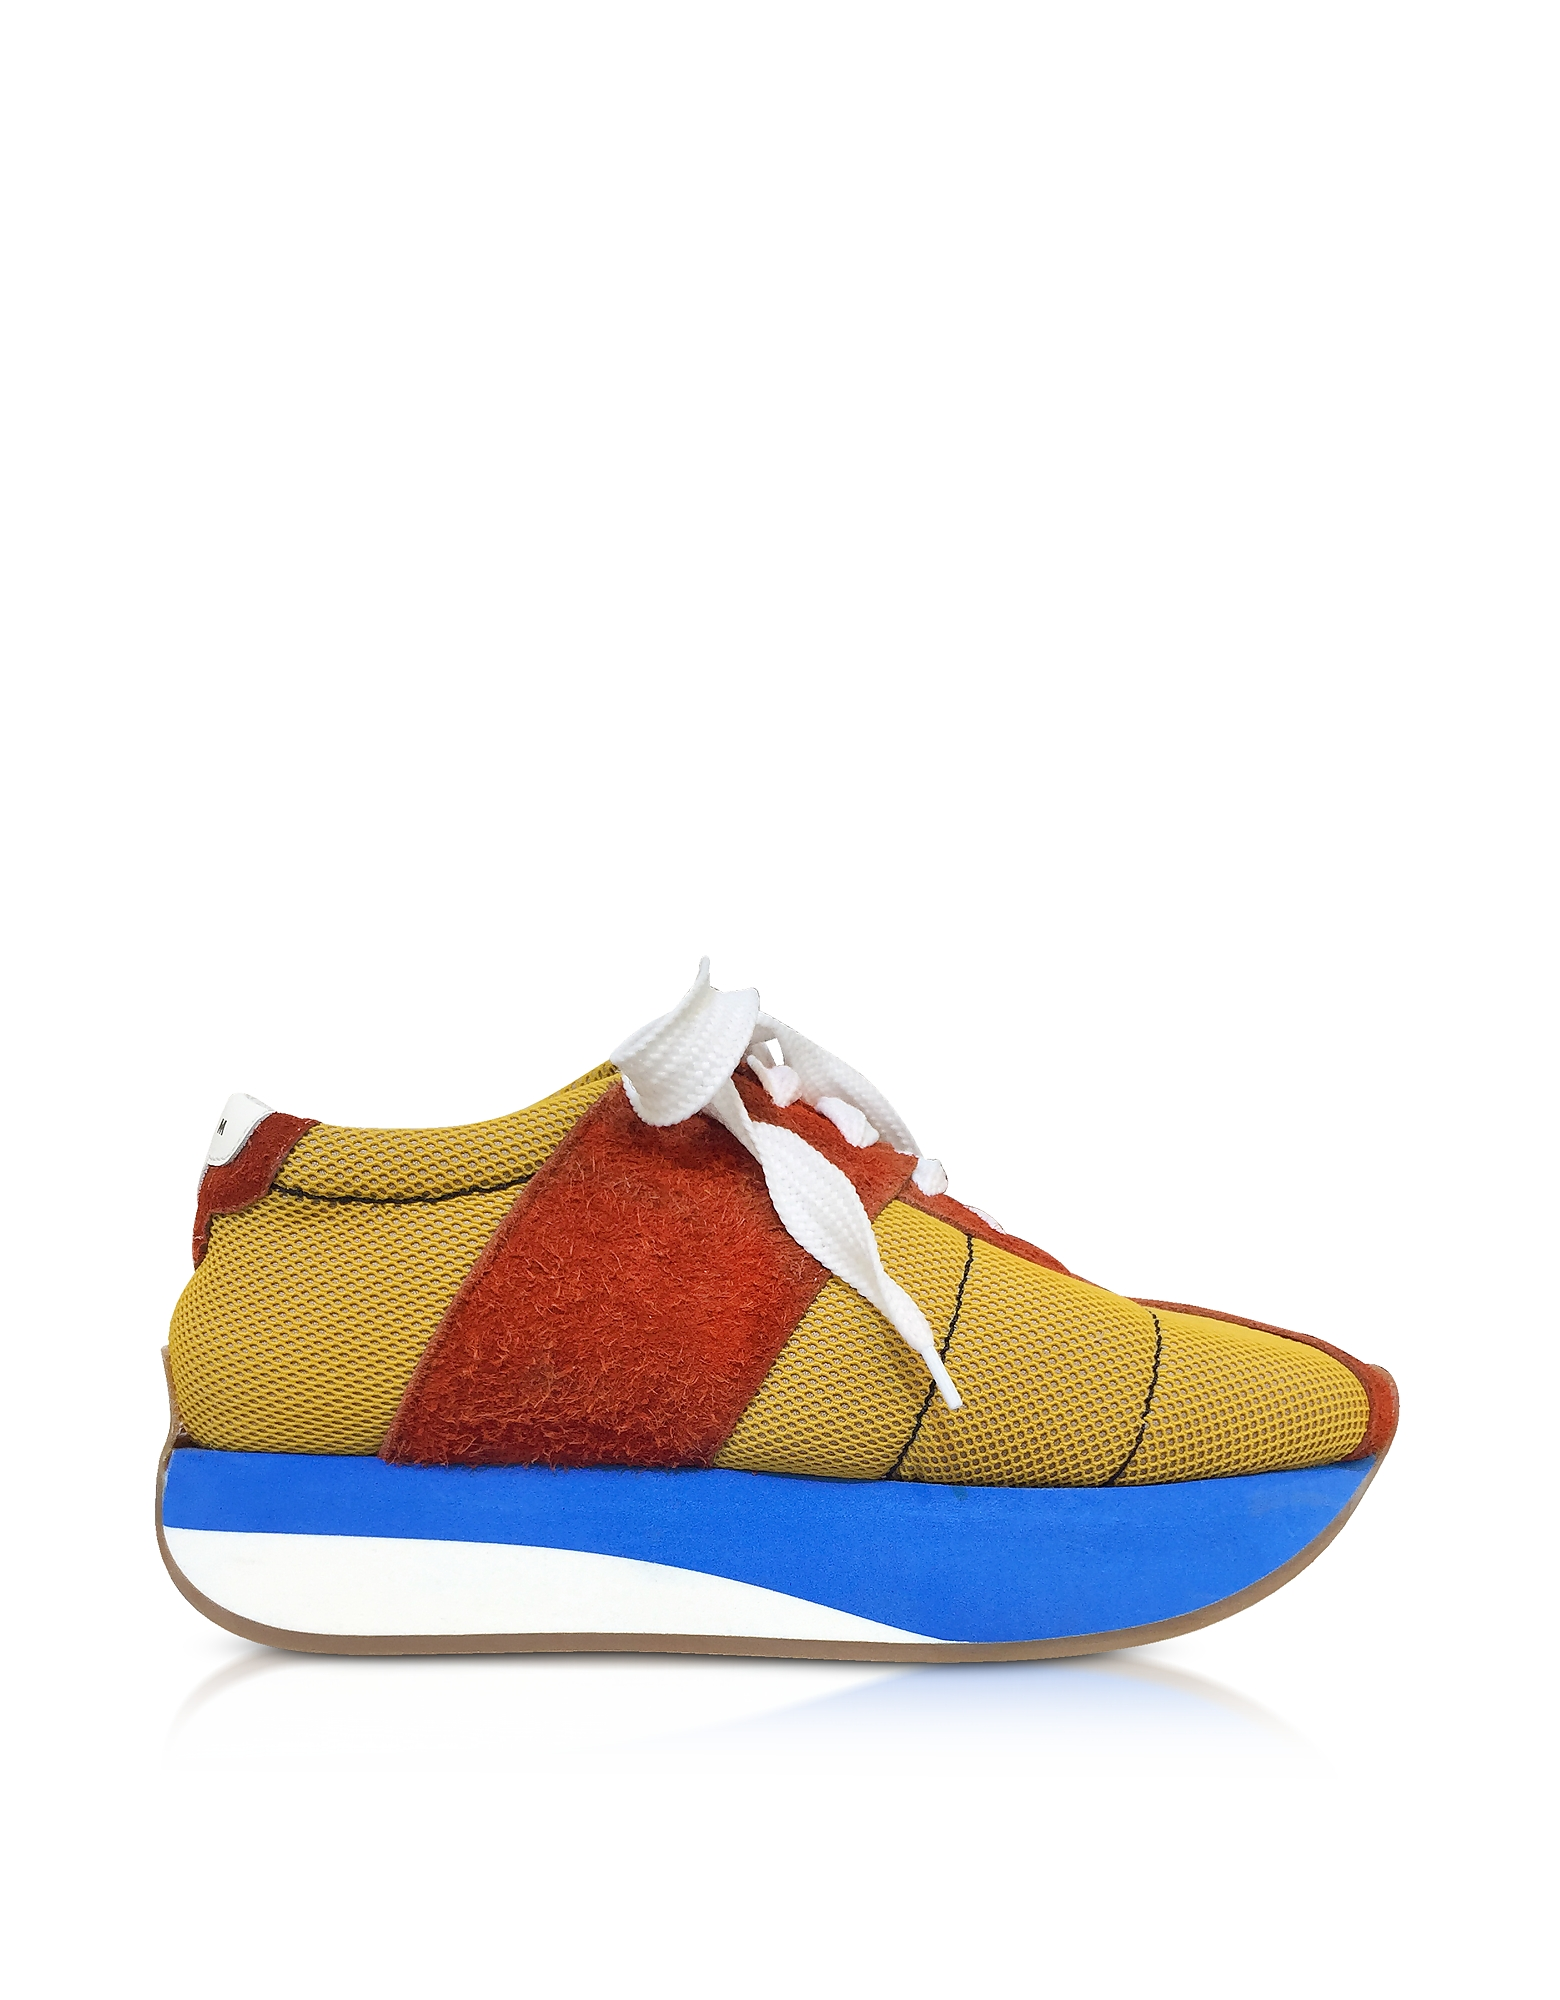 Marni Shoes, Ochre and Rust Tech Fabric Big Foot Sneakers